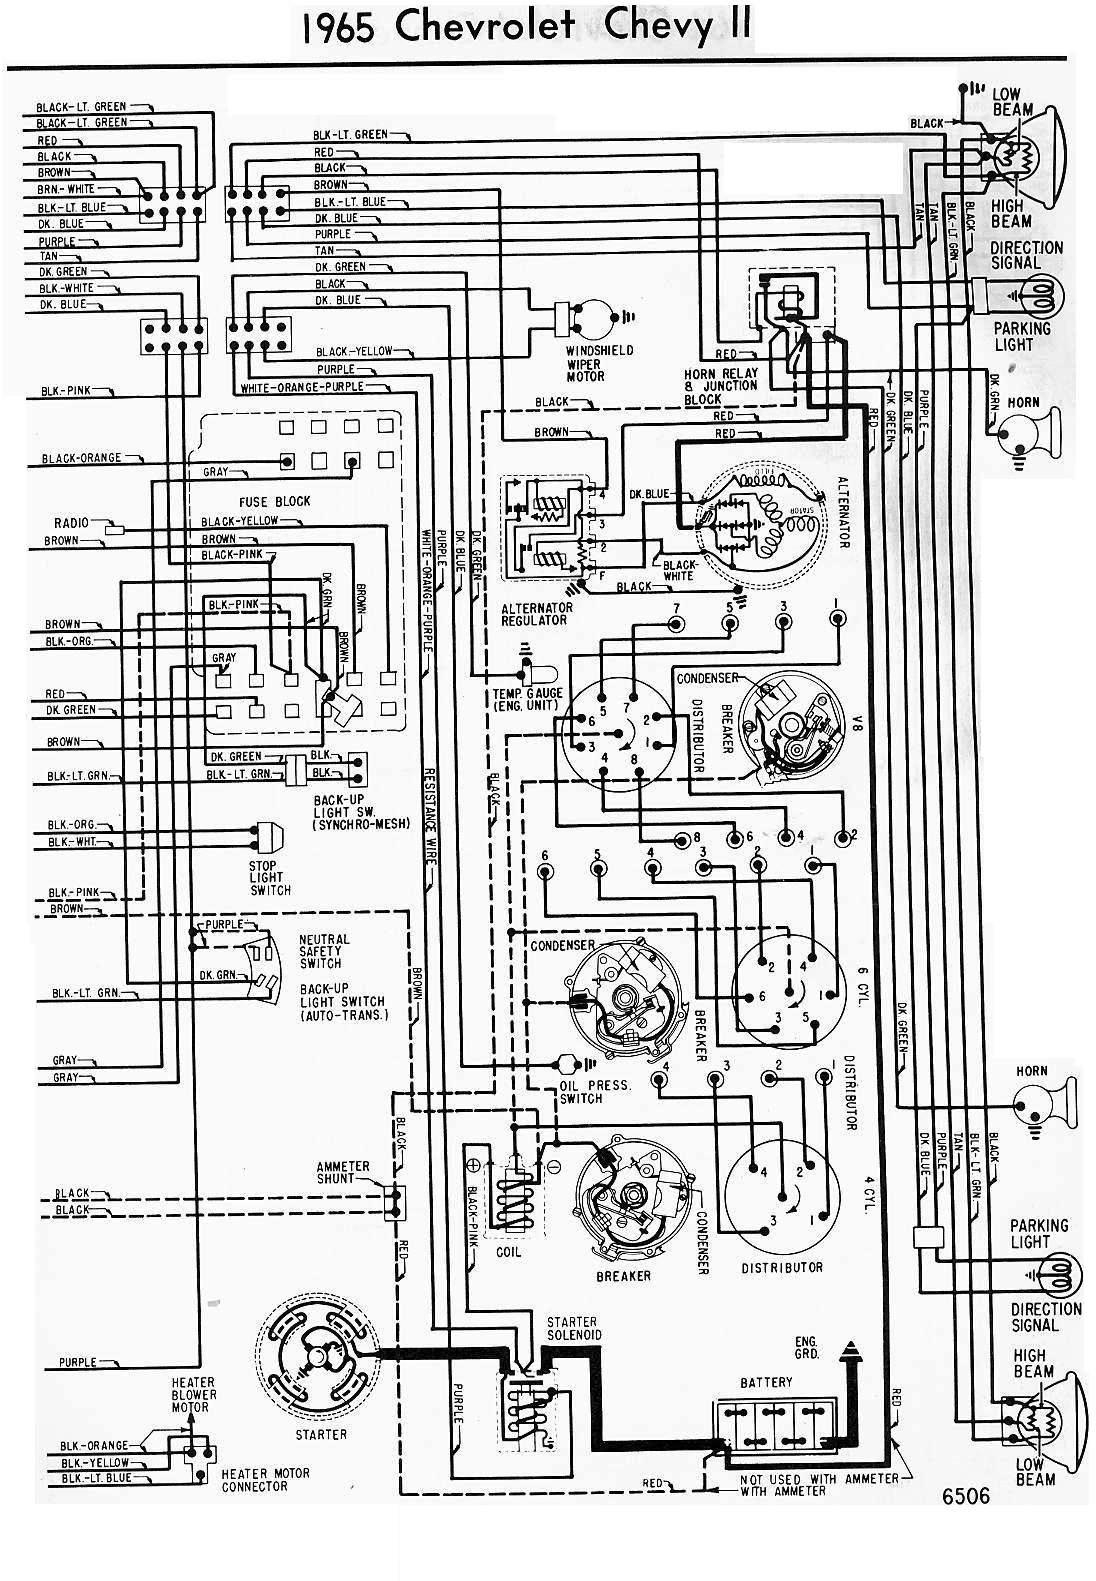 Diagram In Pictures Database Wiring Diagram For 1969 Impala Just Download Or Read 1969 Impala Online Casalamm Edu Mx